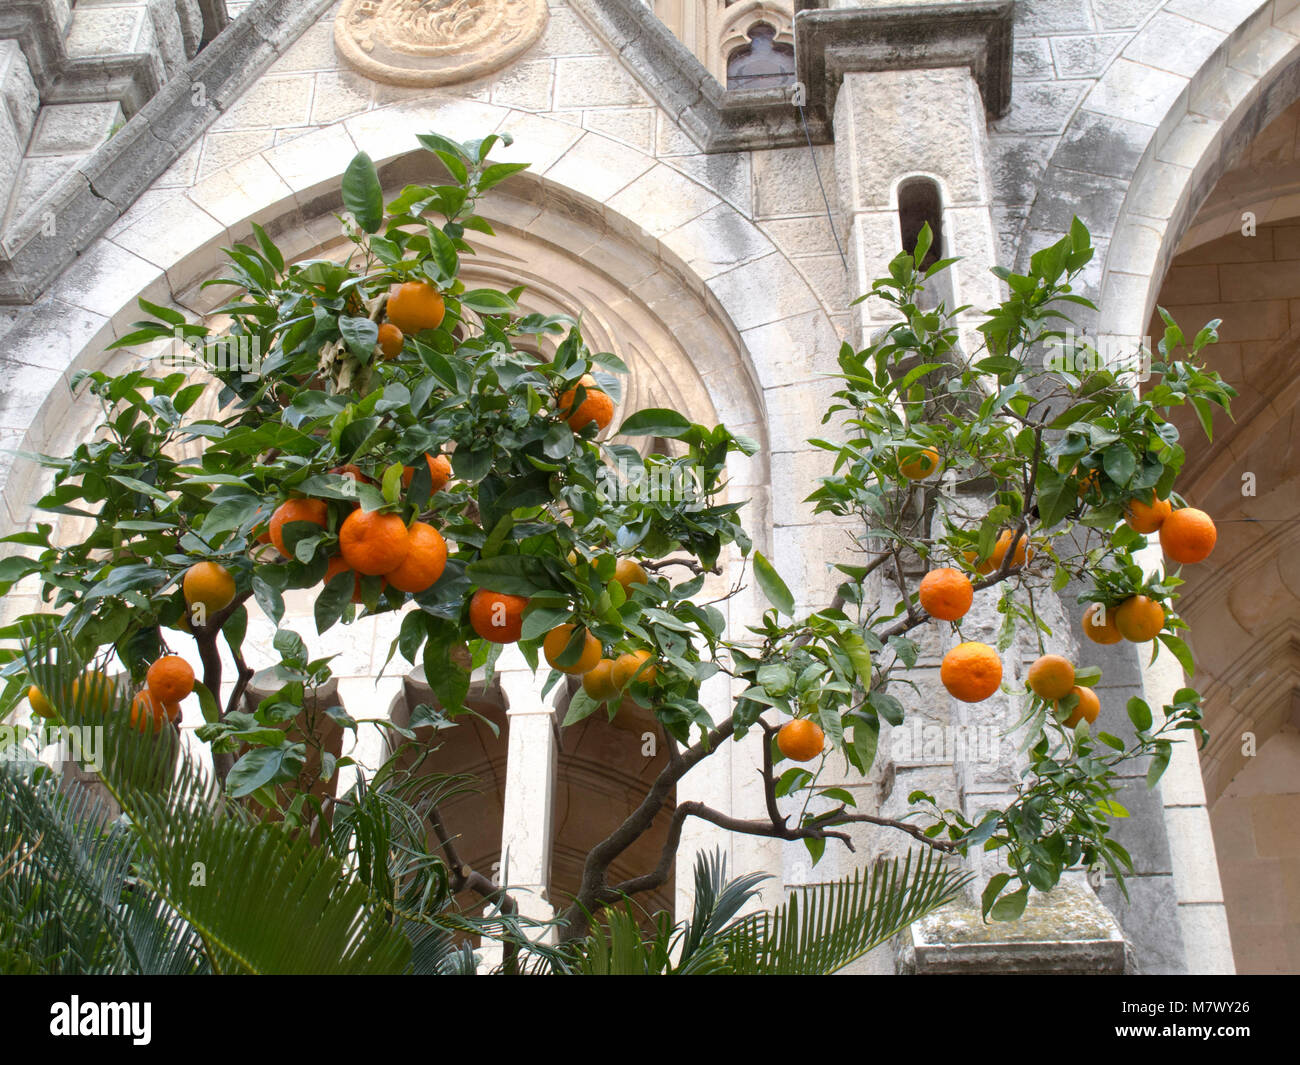 Oranges on a tree in a town square with a church behind Stock Photo